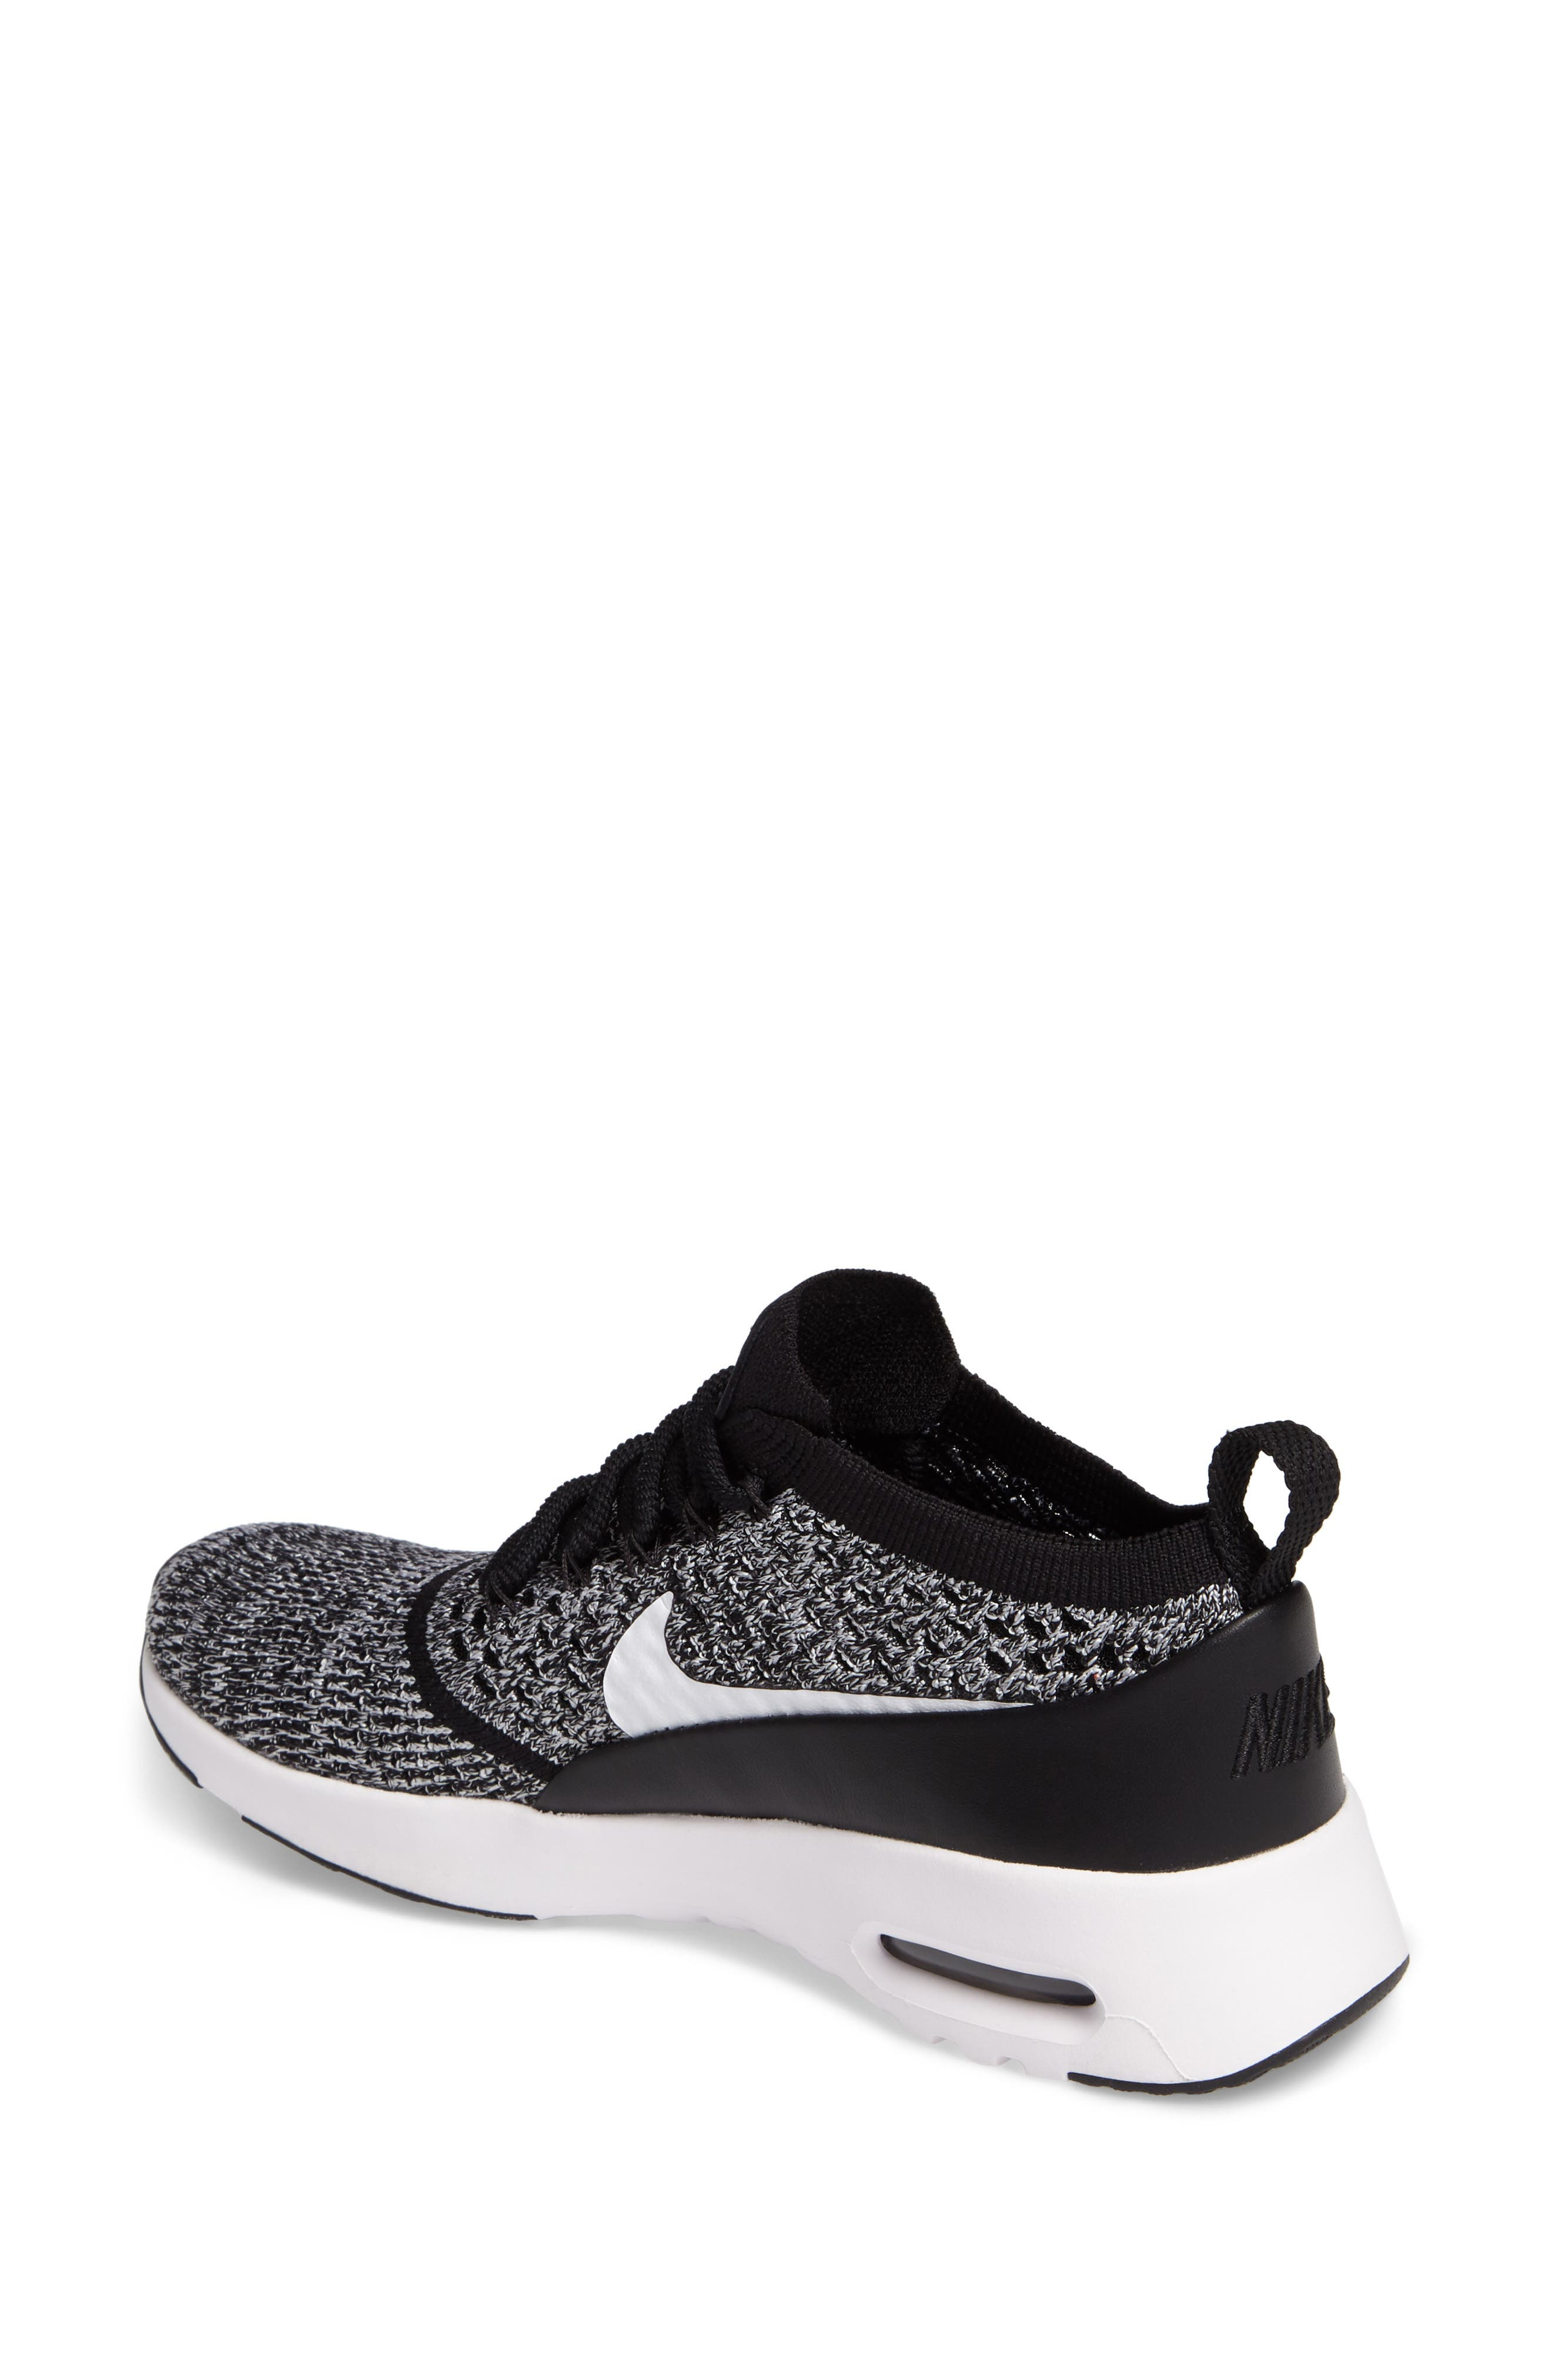 Air Max Thea Ultra Flyknit Sneaker,                             Alternate thumbnail 15, color,